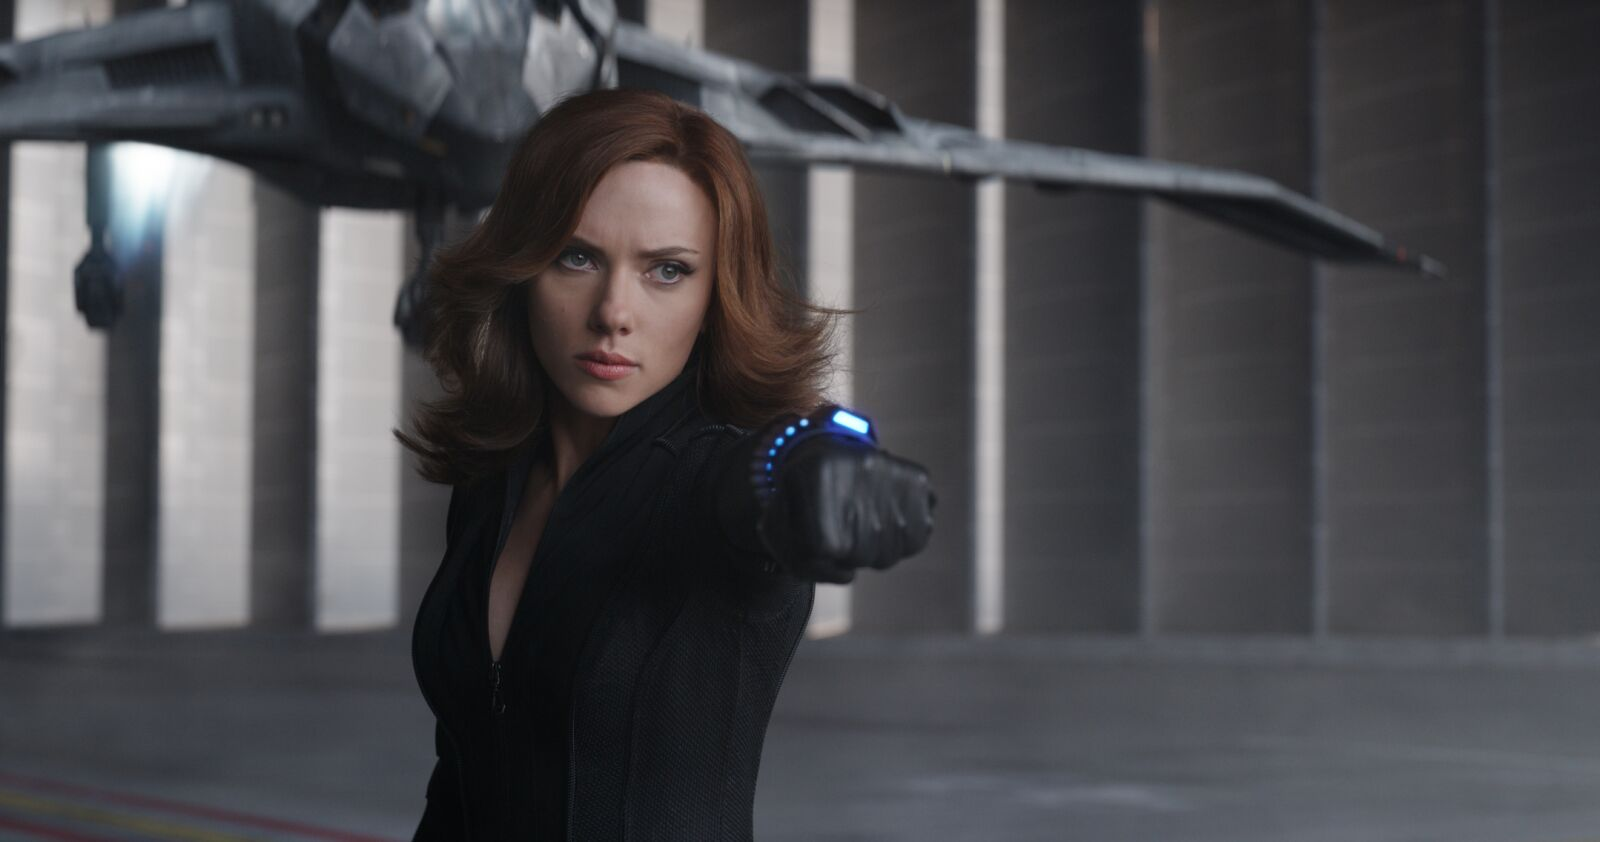 Scarlett Johansson on why Black Widow couldn't have been made 10 years ago